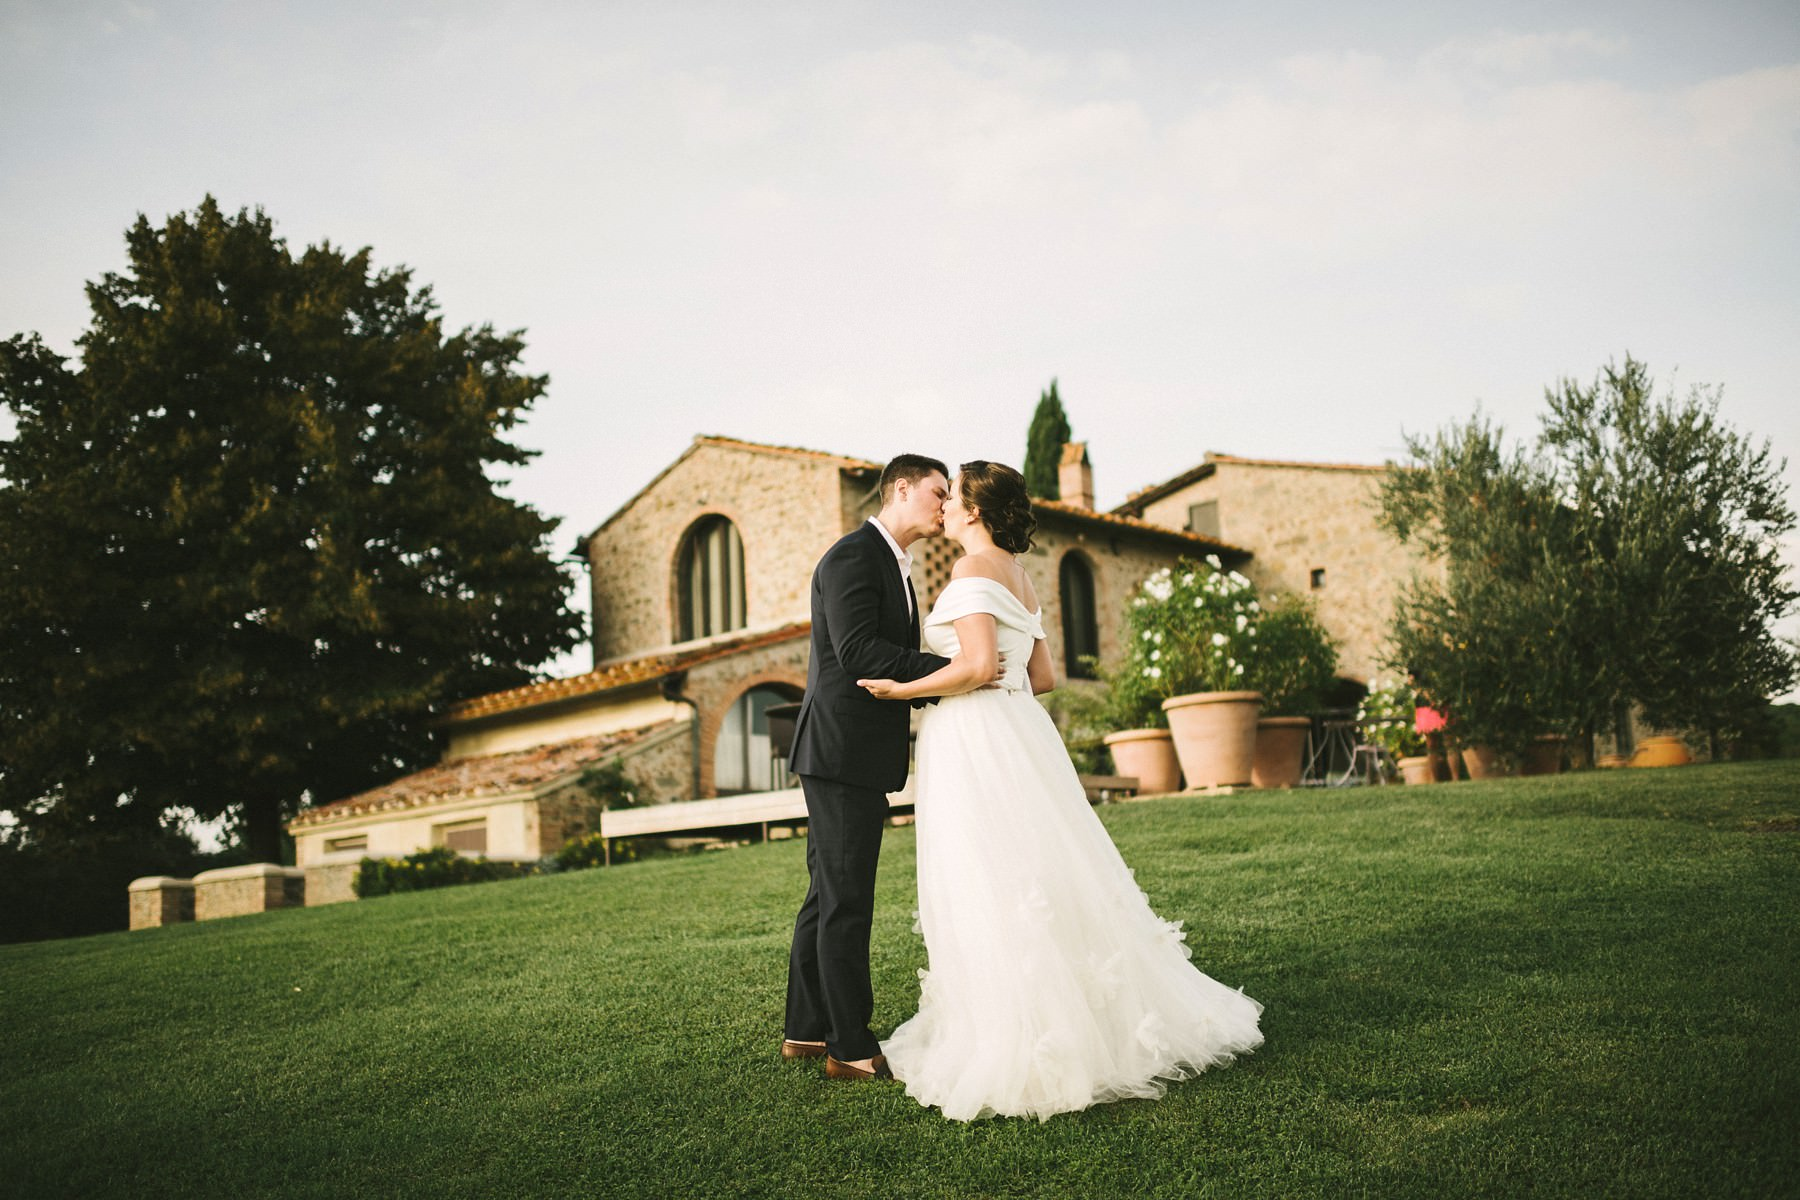 Bride and groom first kiss. Romantic elopement wedding in Tuscany countryside farmhouse Casetta